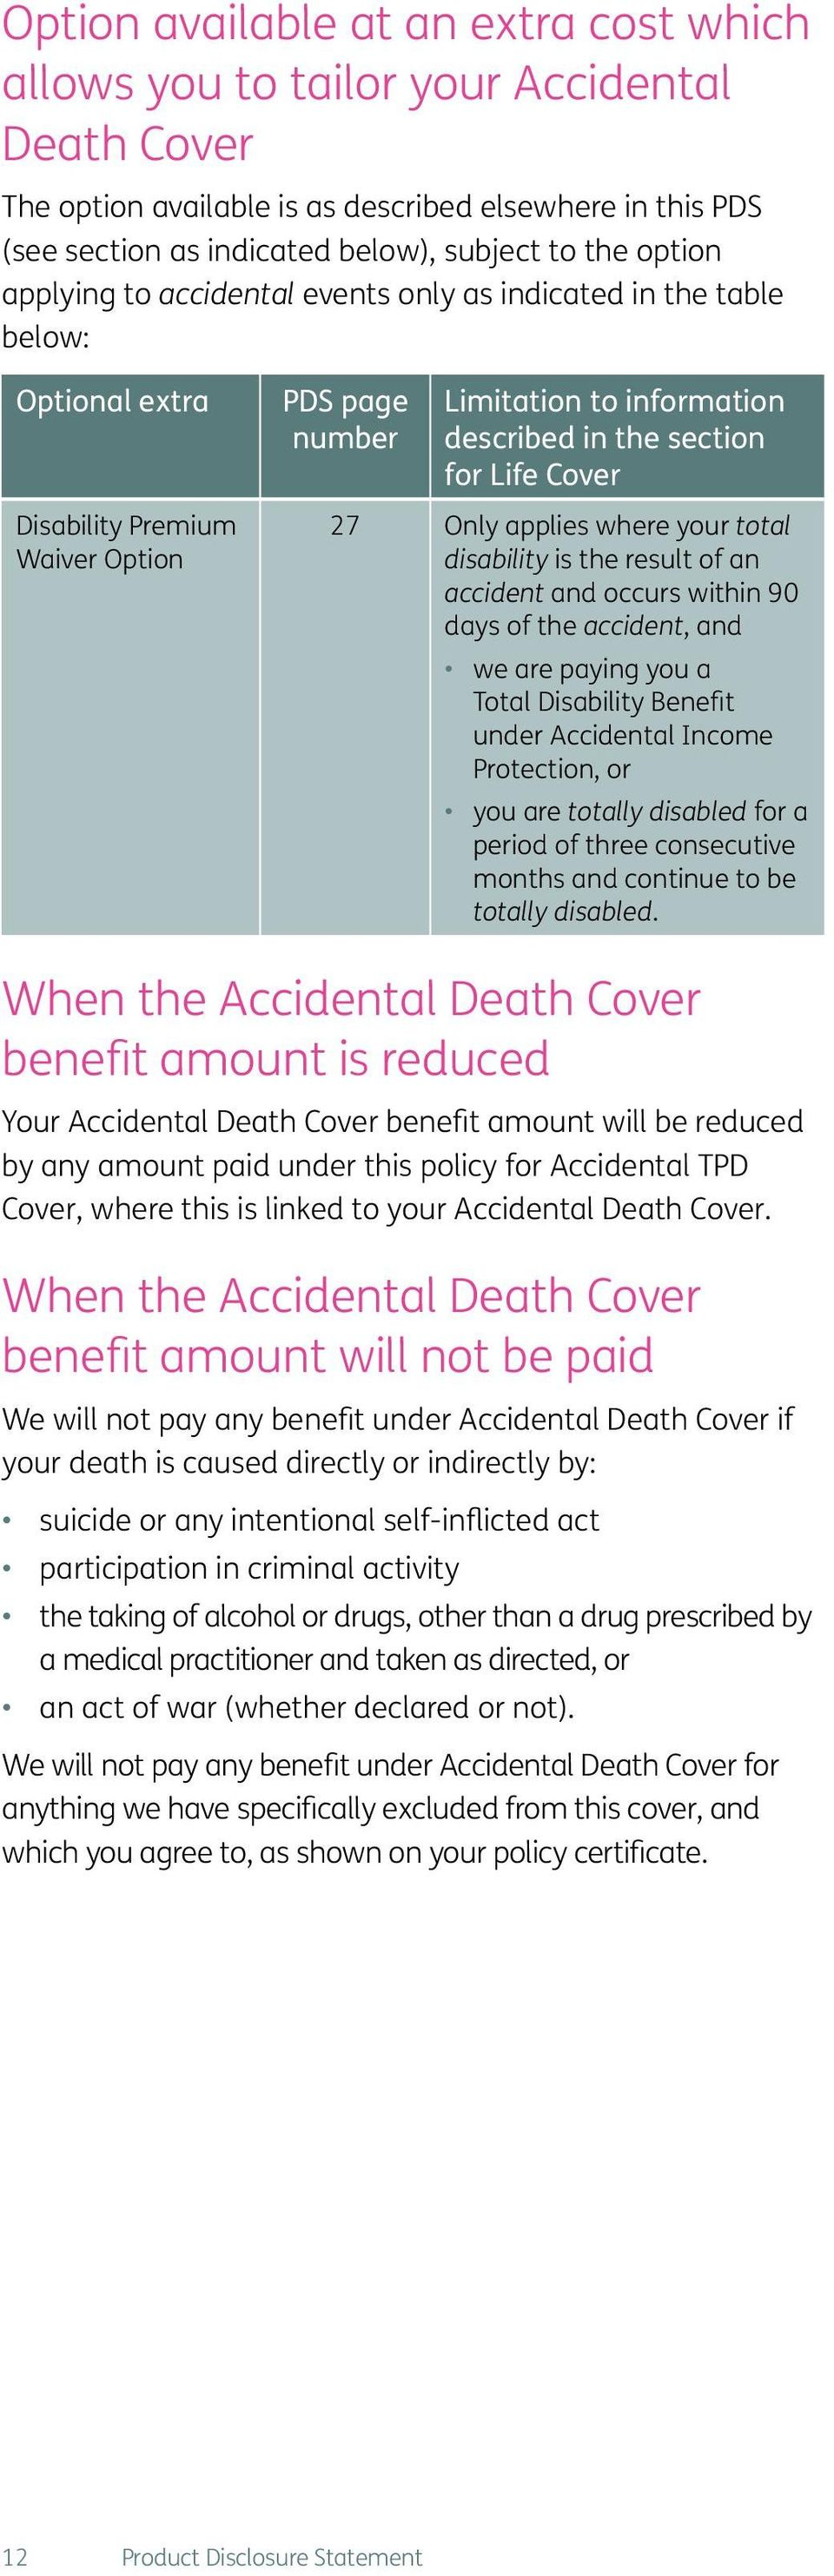 Cover 27 Only applies where your total disability is the result of an accident and occurs within 90 days of the accident, and we are paying you a Total Disability Benefit under Accidental Income